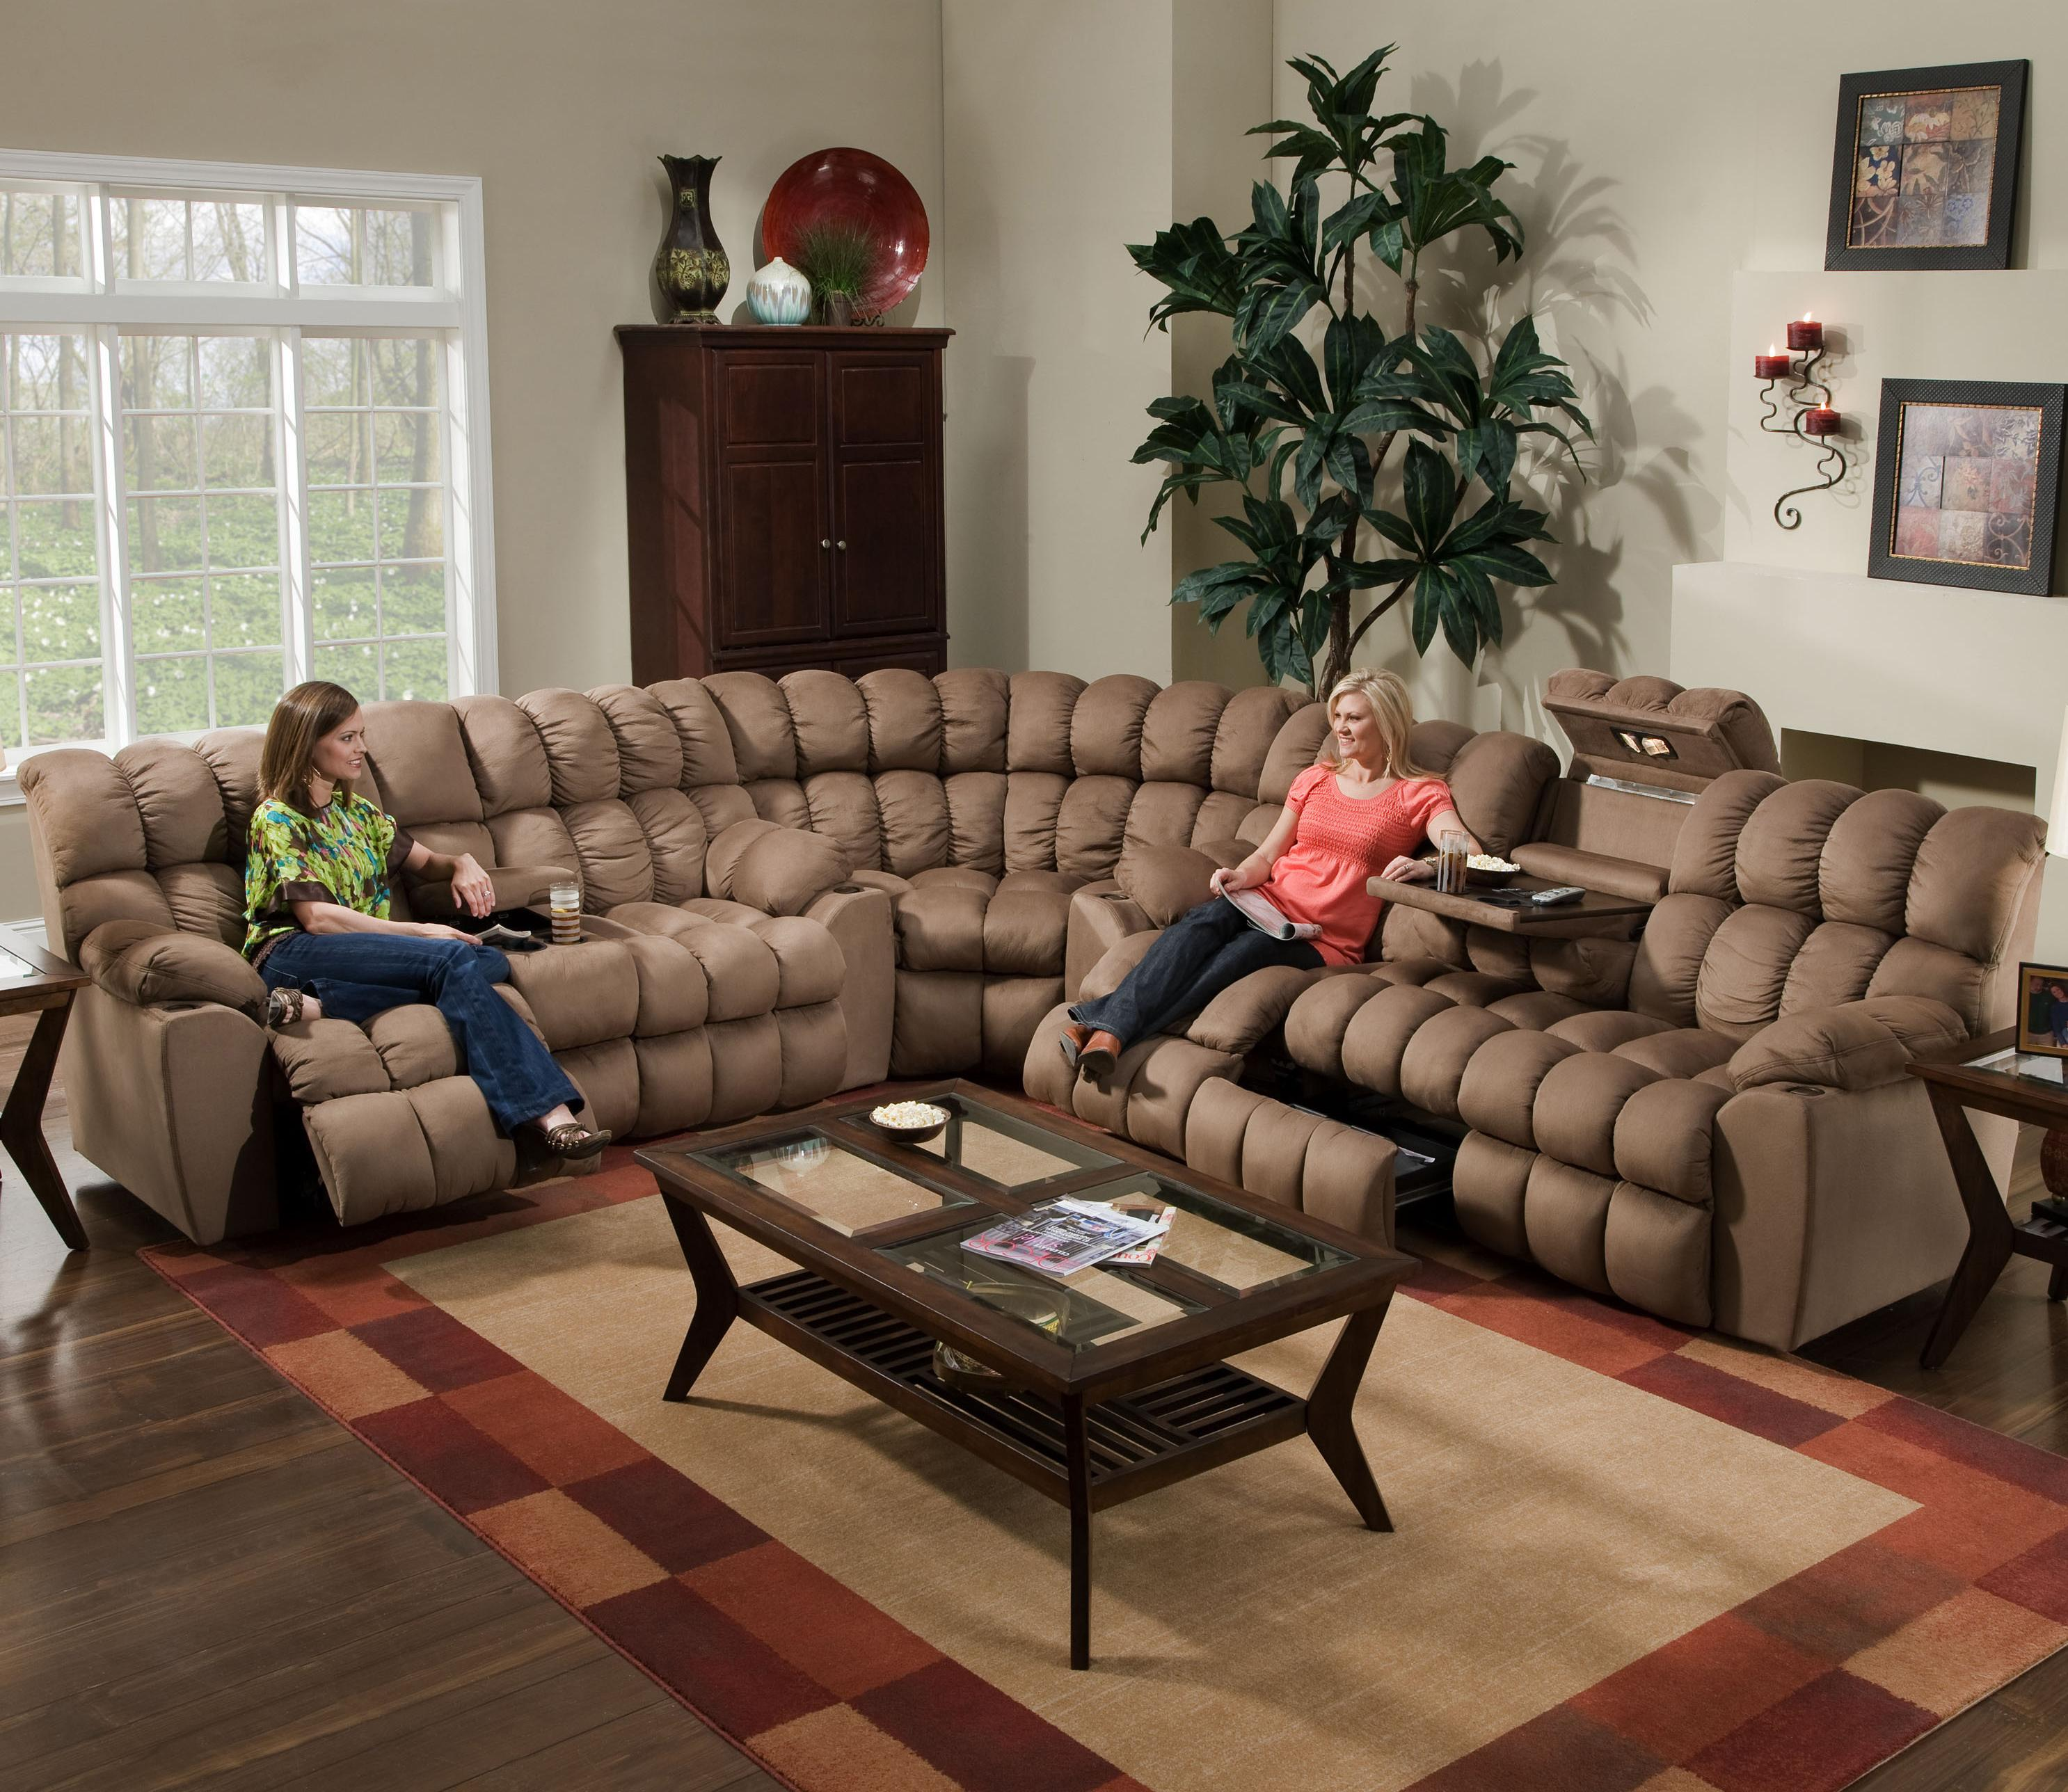 Perfect 542 Sectional With Reclining Sofa, Reclining Loveseat, Wedge, And Built In  Tables By Franklin